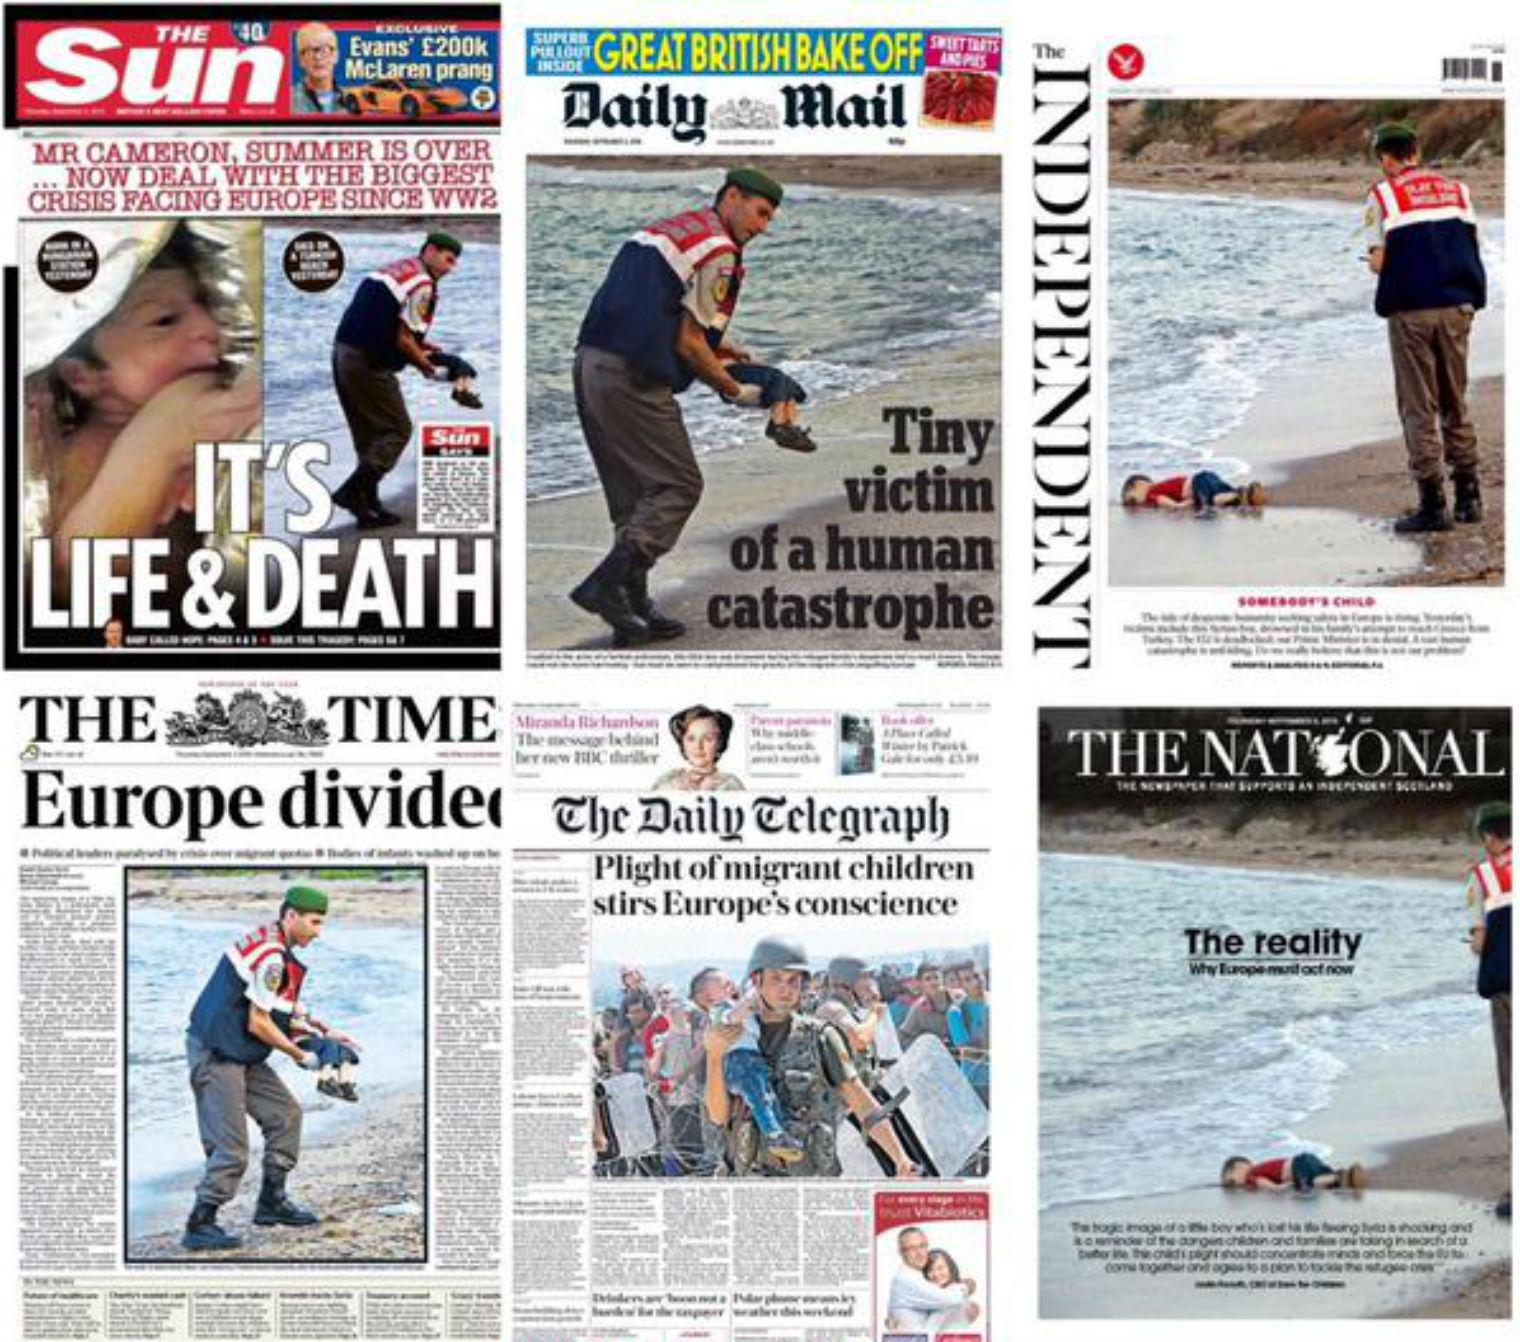 RT @Independent: The day the British media finally got a conscience http://t.co/bKUVebF39q http://t.co/Uf64bFLQzh